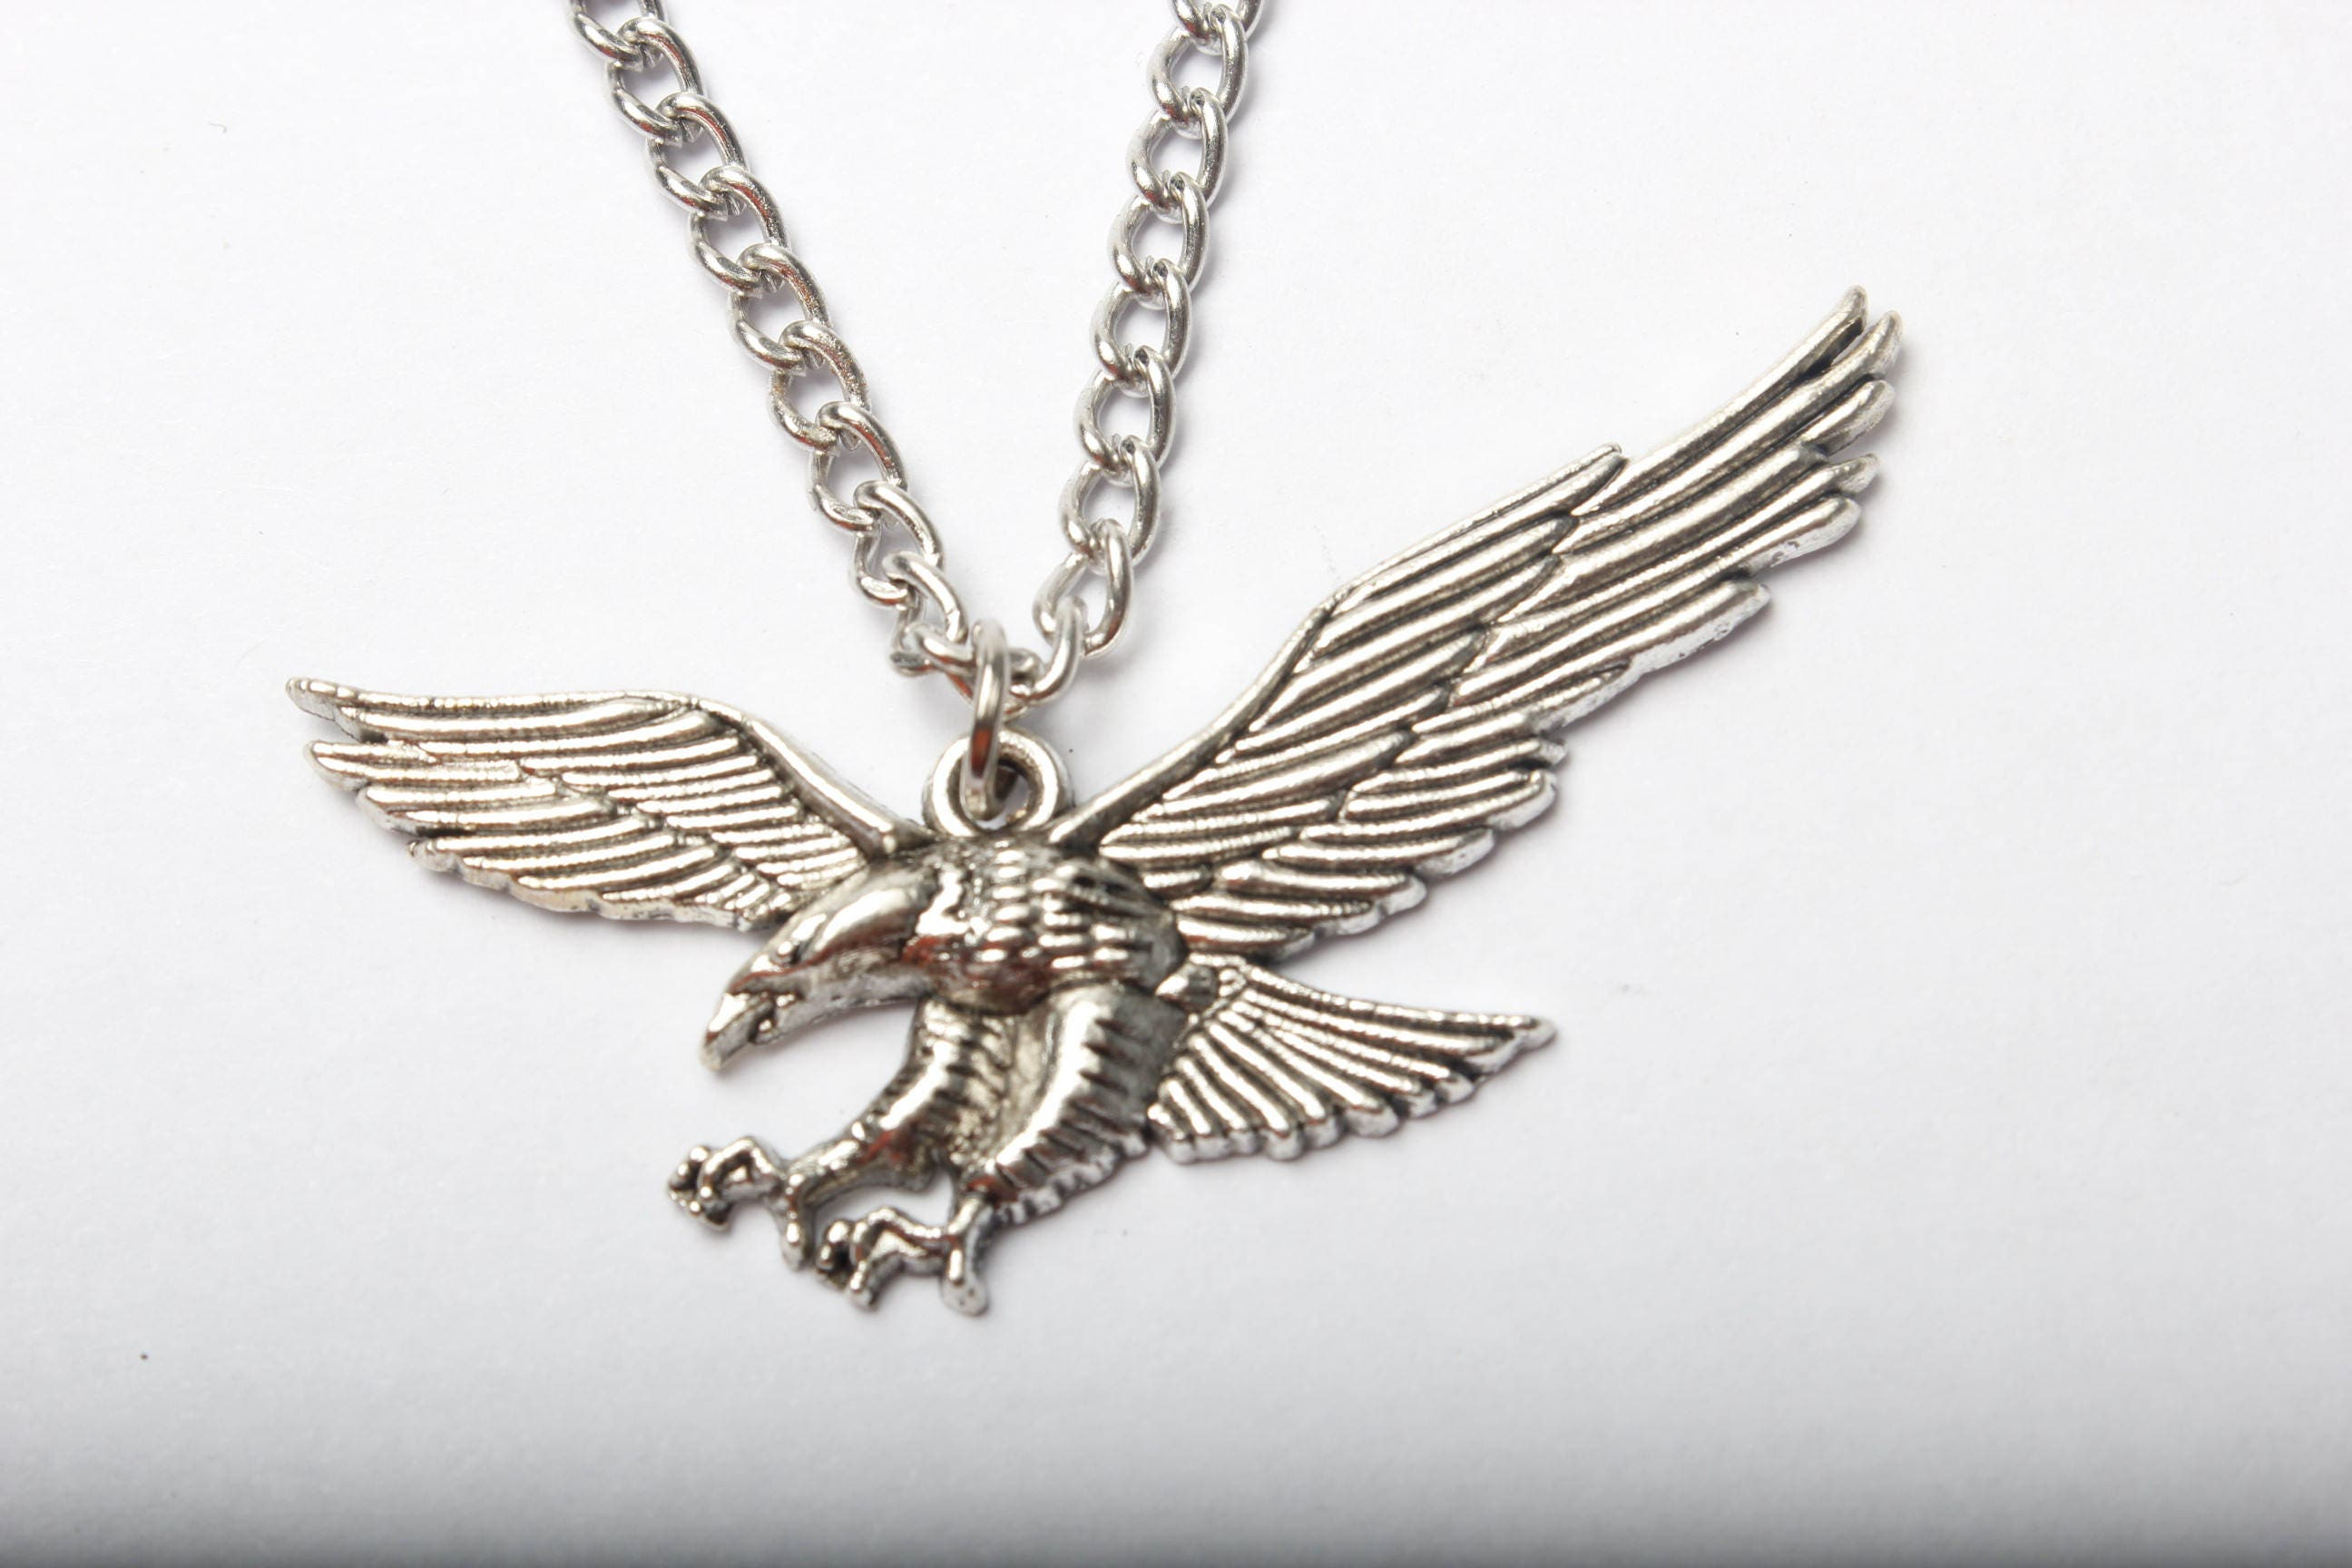 silver steel eagle pendant gold chain stainless uk jewellery jewelry antique co necklace amazon men s dp